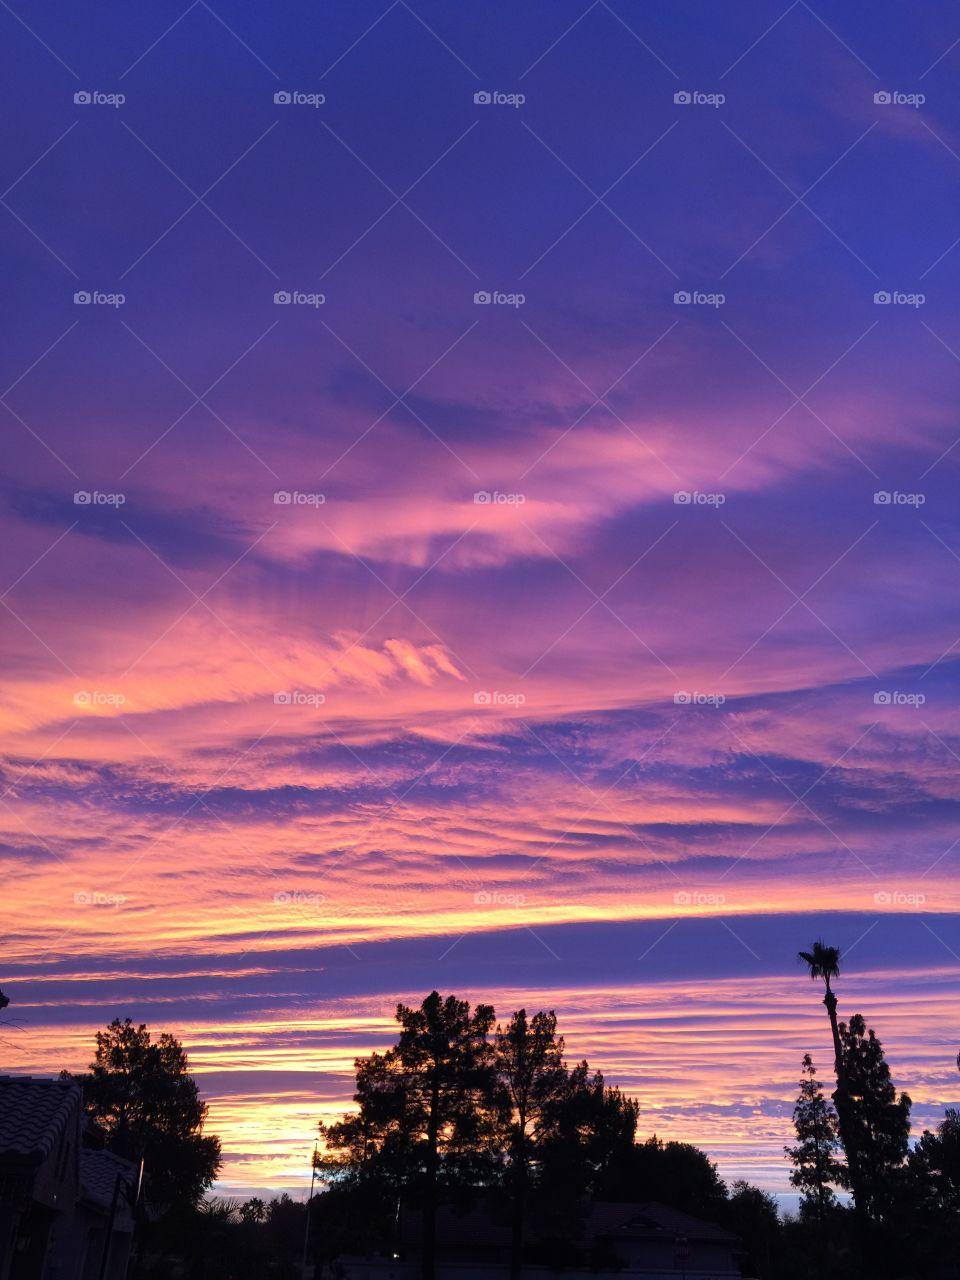 Spectacular sky view during sunrise on dec. 11 2015, around 7:20 am, Arizona. W/ iPhone 6 s plus. No photoshop or photo editor. Natural.